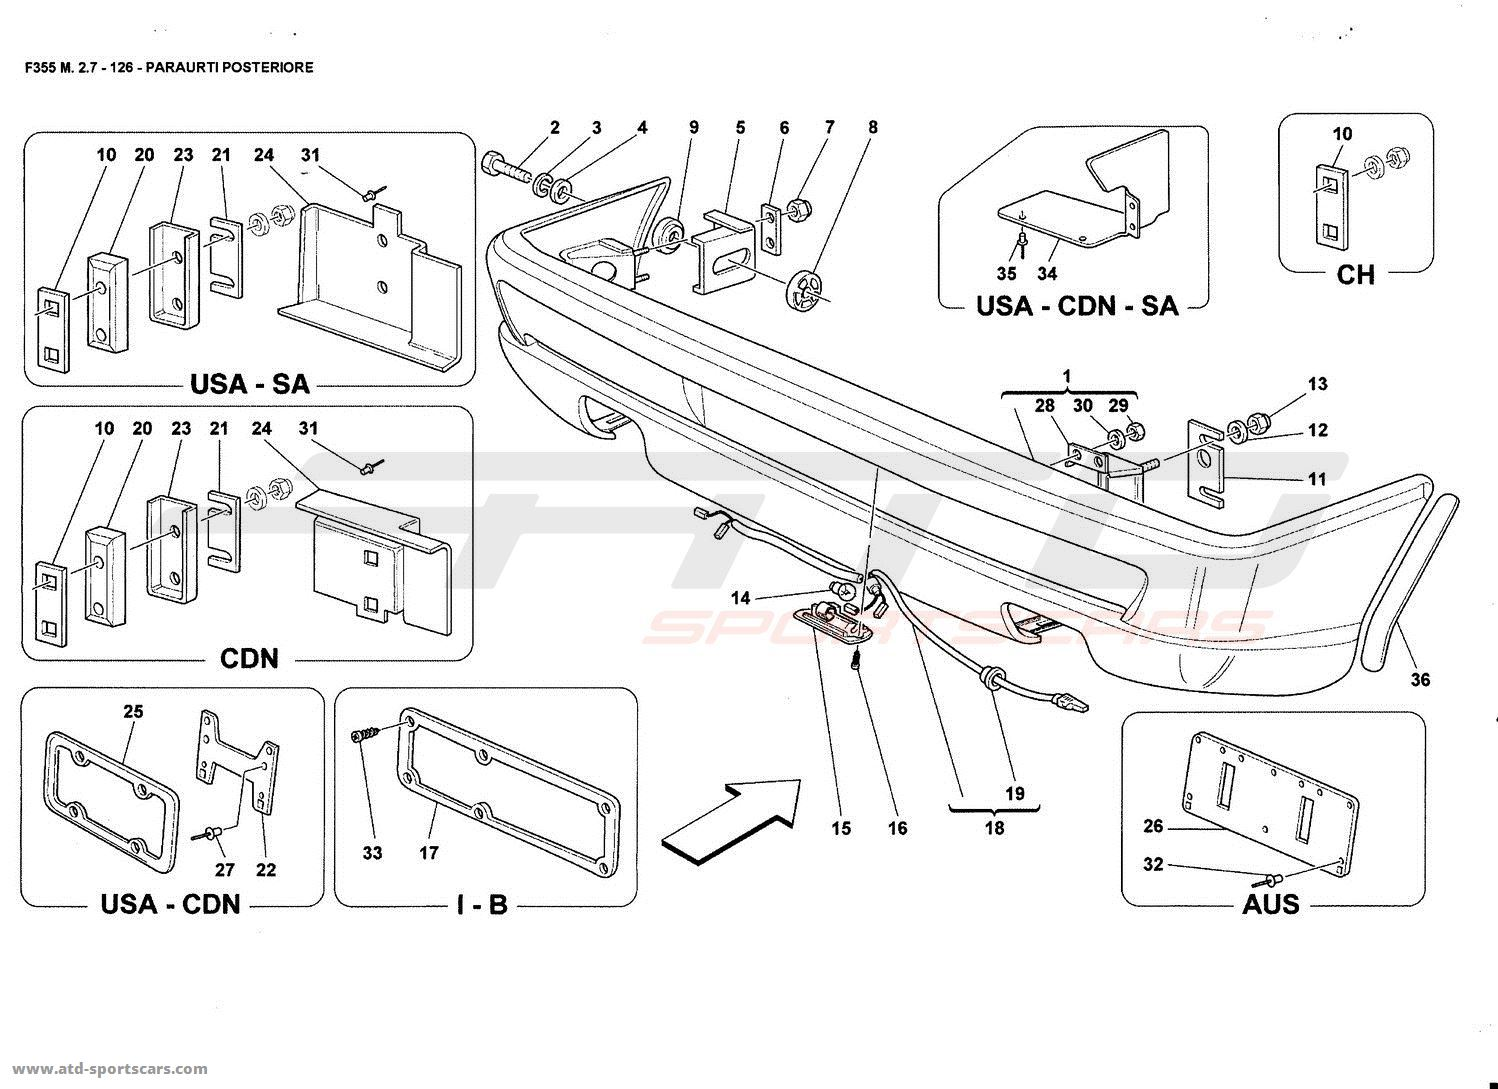 Marvelous Ferrari 355 Wiring Diagram Auto Electrical Wiring Diagram Wiring Cloud Pimpapsuggs Outletorg